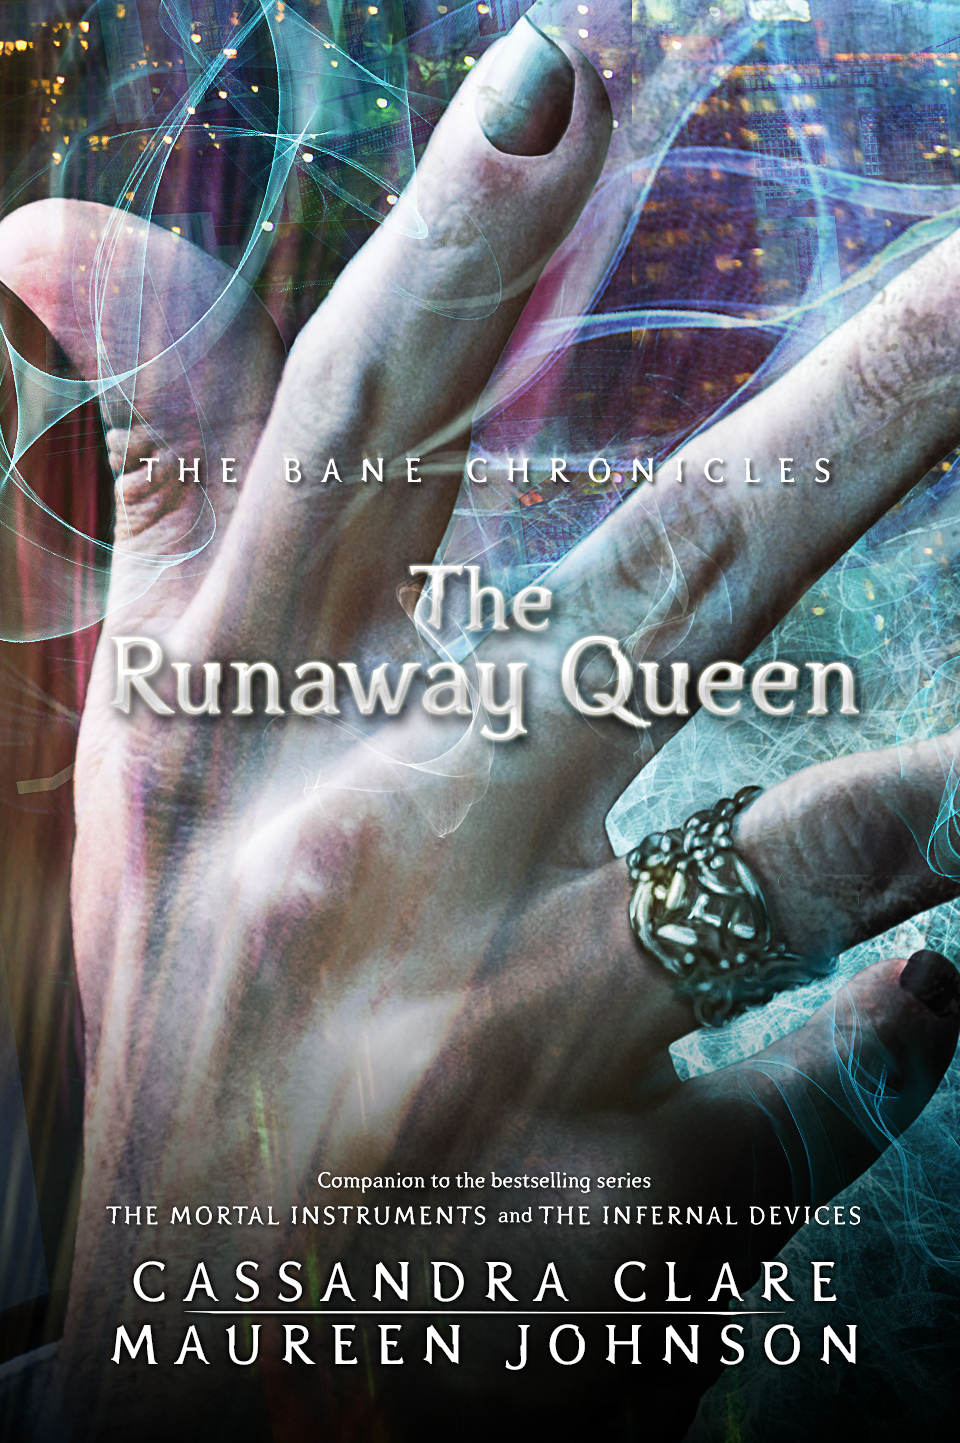 cassandraclare: The cover of the next of the Bane Chronicles: The Runaway Queen! Enjoy, my lovelies! Magnus, what a distinguished ring you have. THE STORY! SHE IS COMING FOR YOU! COMES OUT ON TUESDAY!